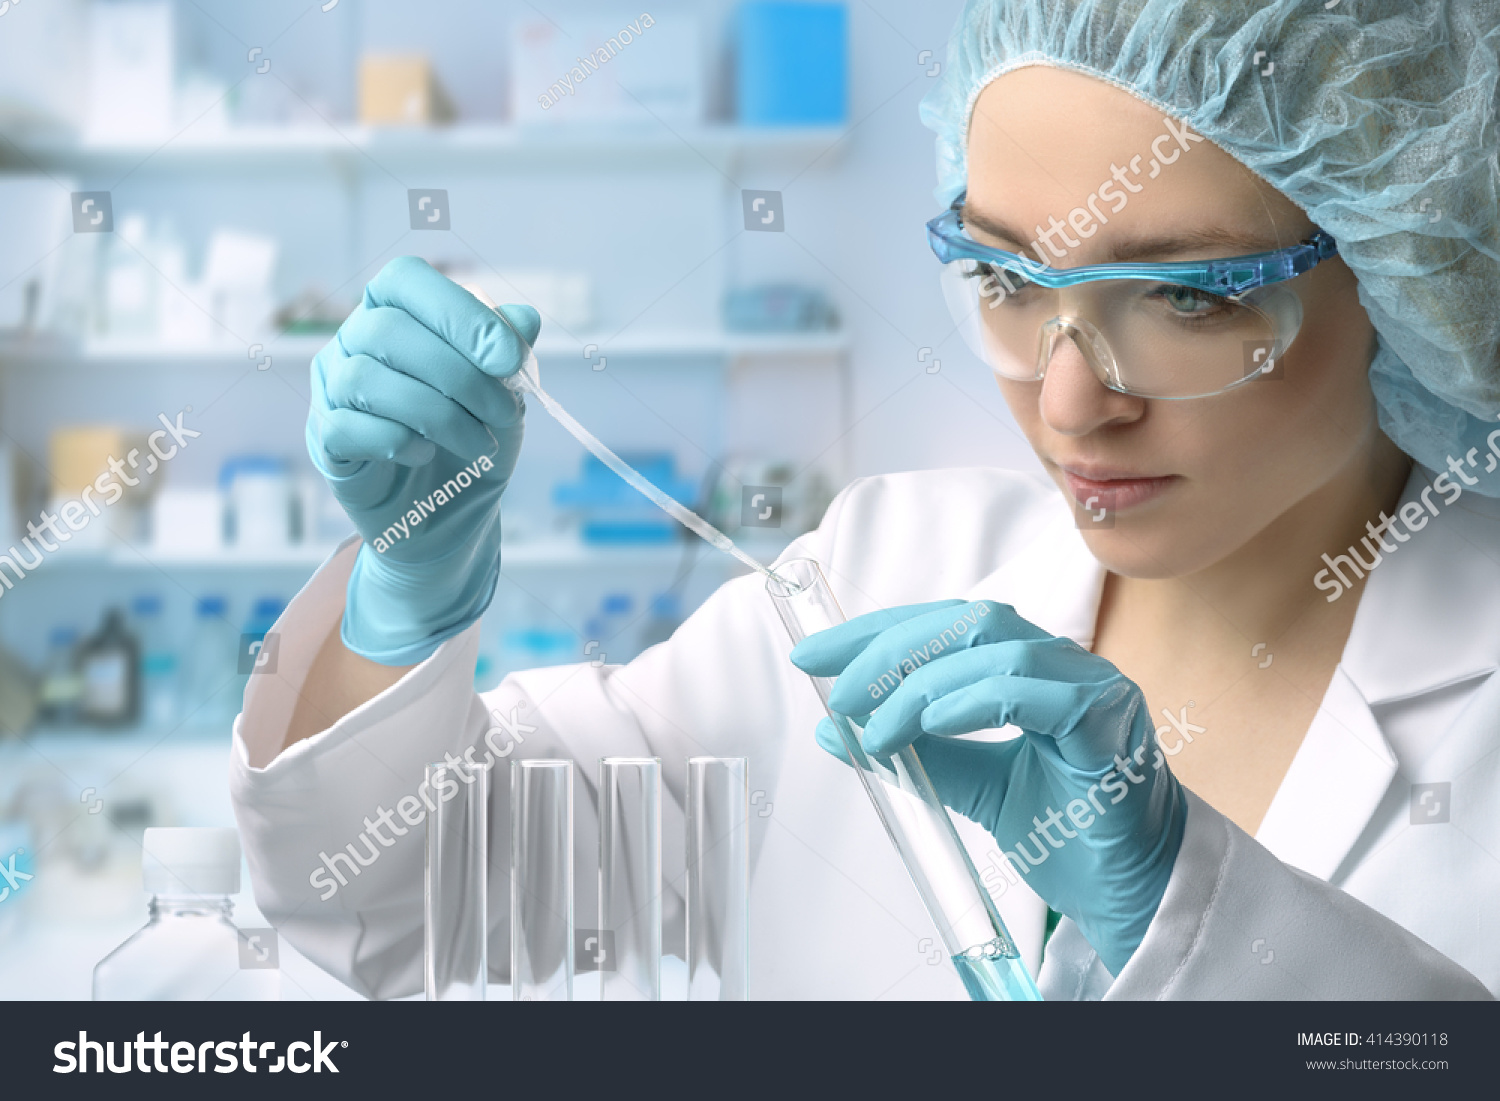 Young female tech or scientist loads liquid sample into test tube with plastic pipette. Shallow DOF, focus on the hand with the tube. #414390118